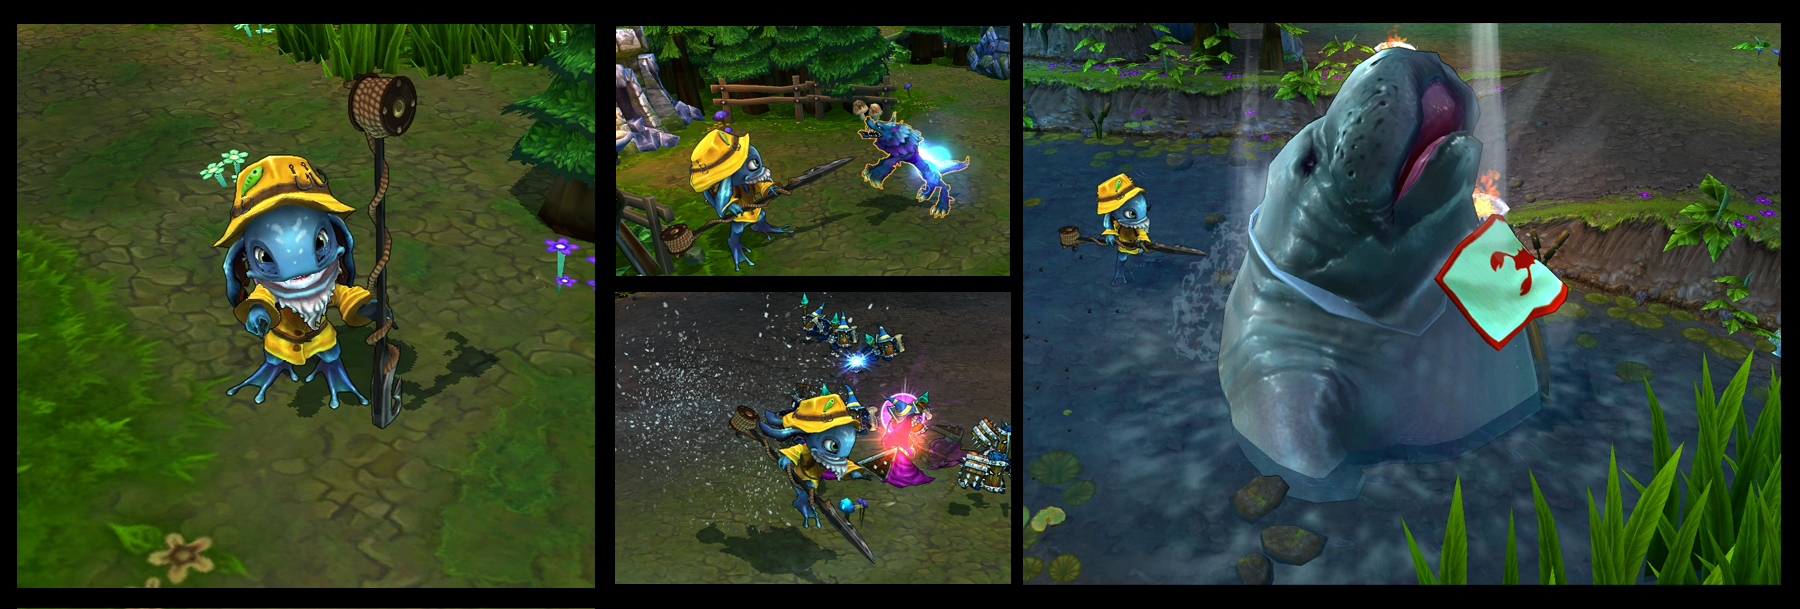 Image result for FIZZ HERO LOL ROLE IN GAMEPLAY